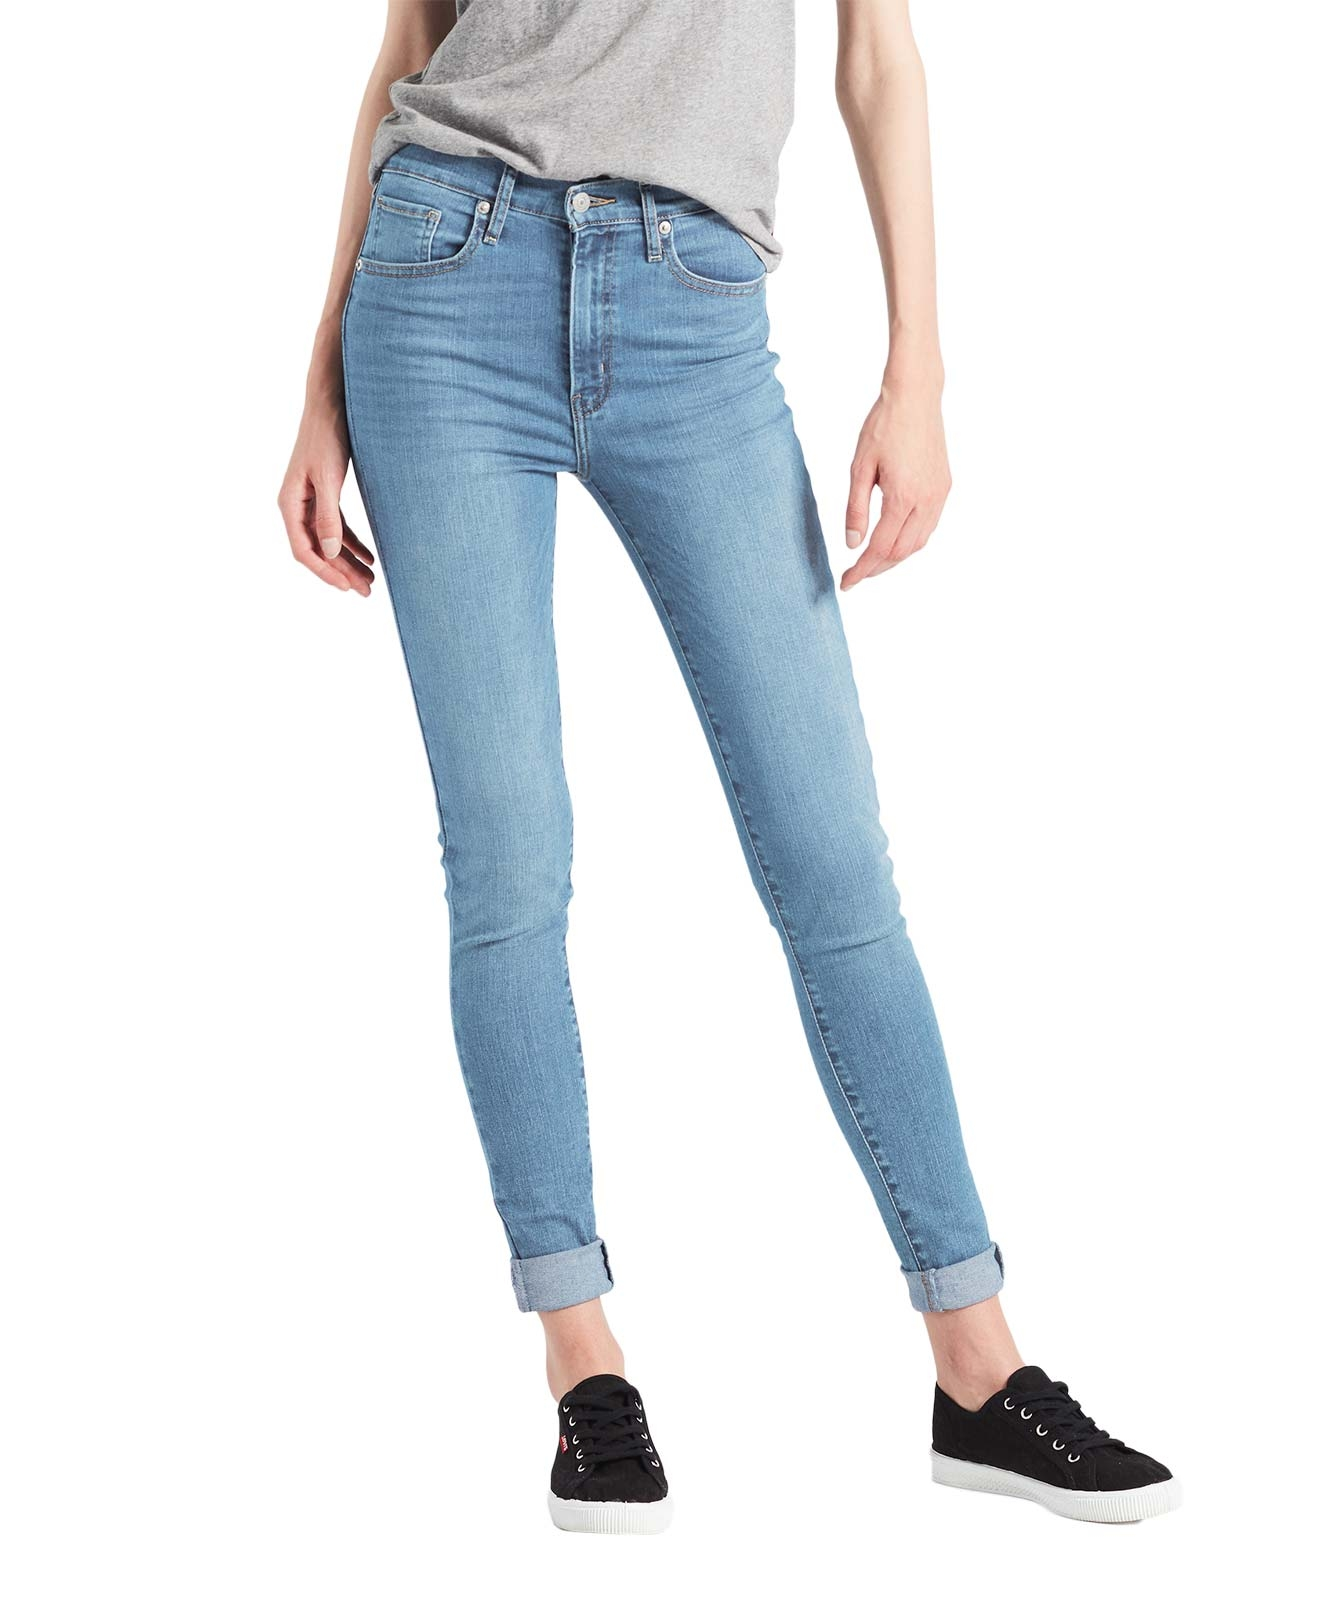 Hosen - Levi's Mile High Super Skinny Jeans in You Got Me Waschung  - Onlineshop Jeans Meile